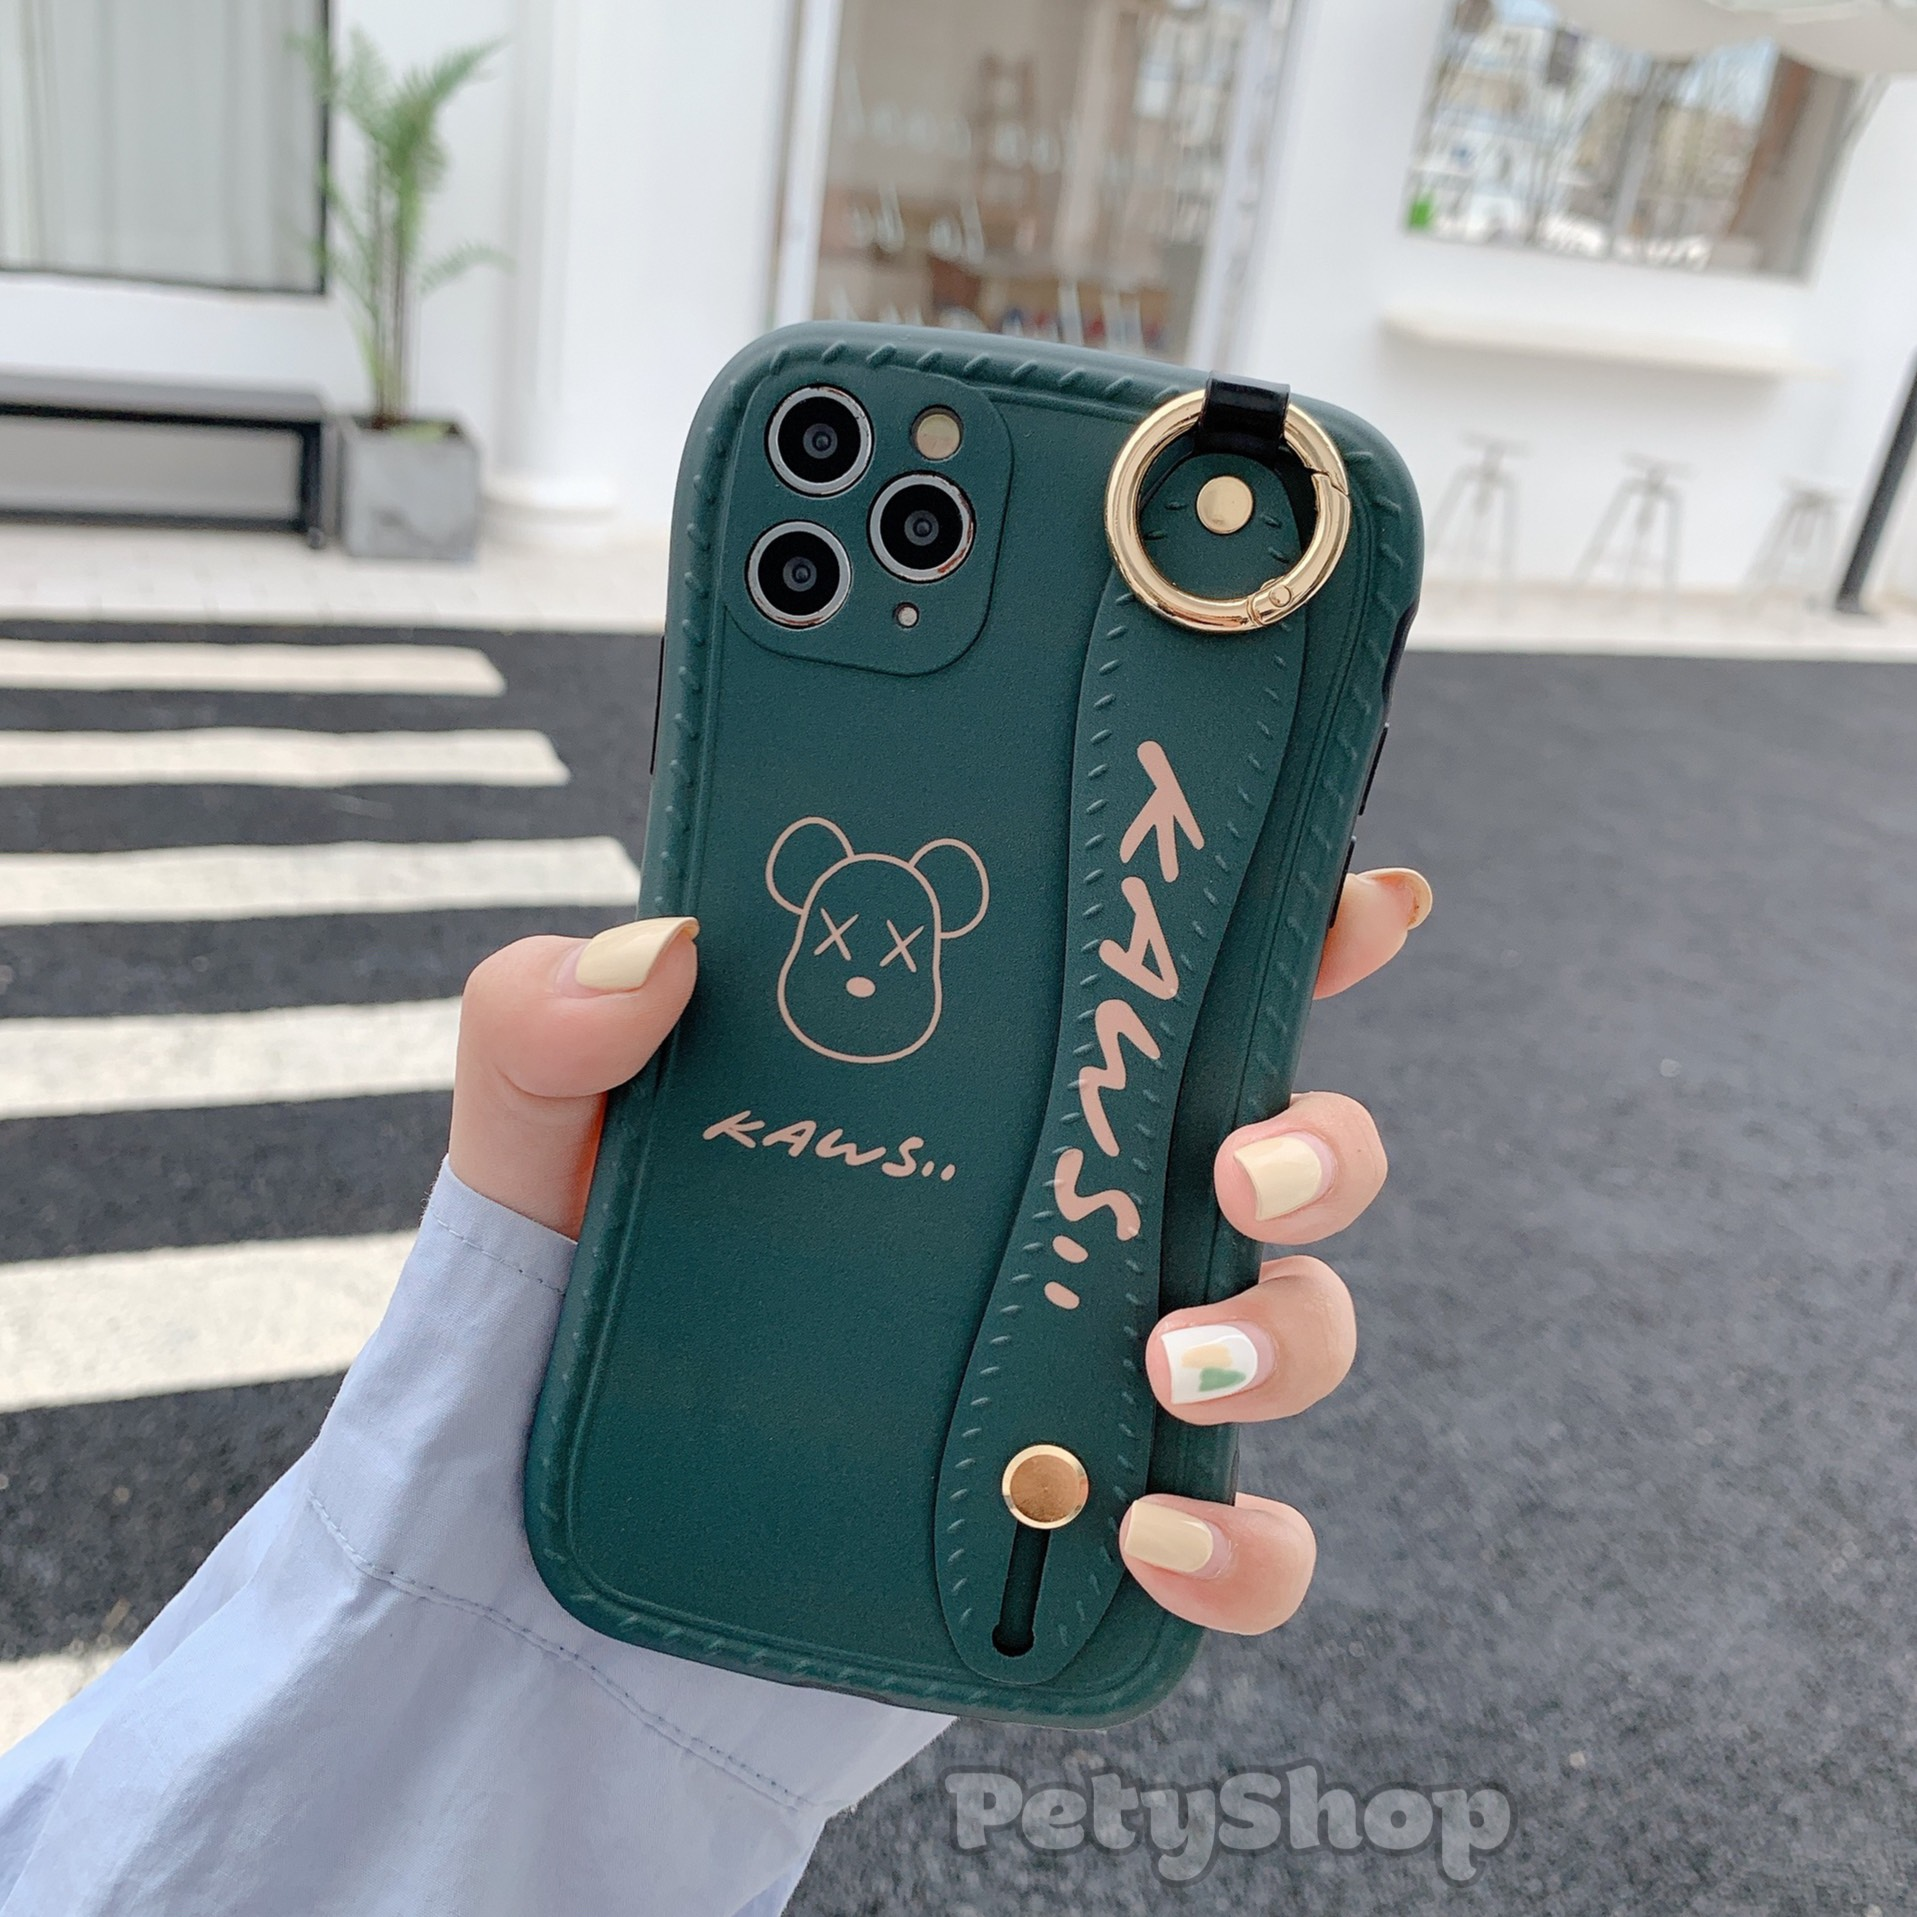 Ốp bọc camera xỏ tay Kaws VS2 iPhone 12 Pro Max